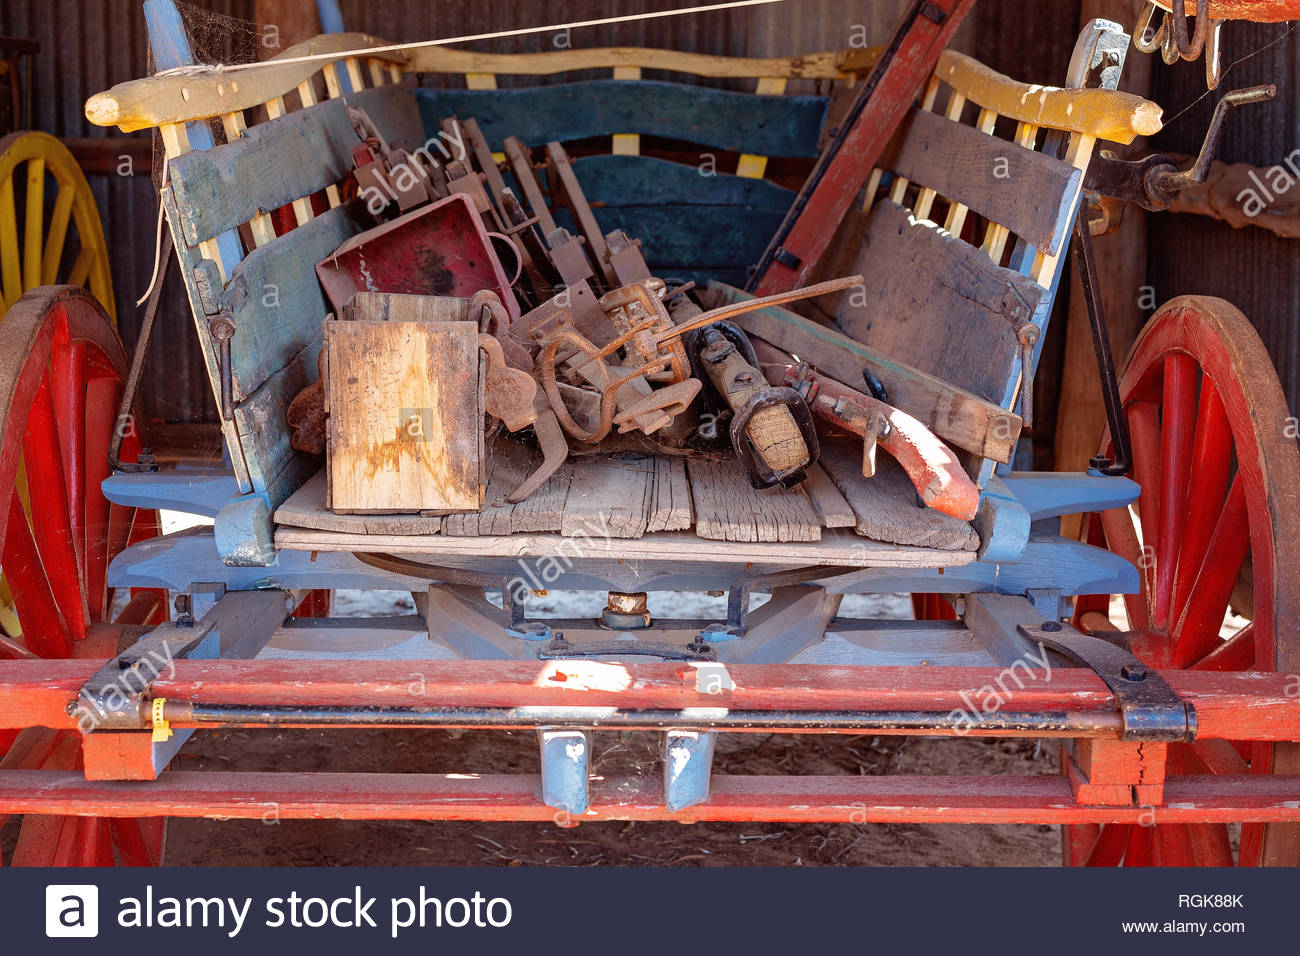 The back of an old vintage horse drawn wagon filled with ancient tools - Stock Image